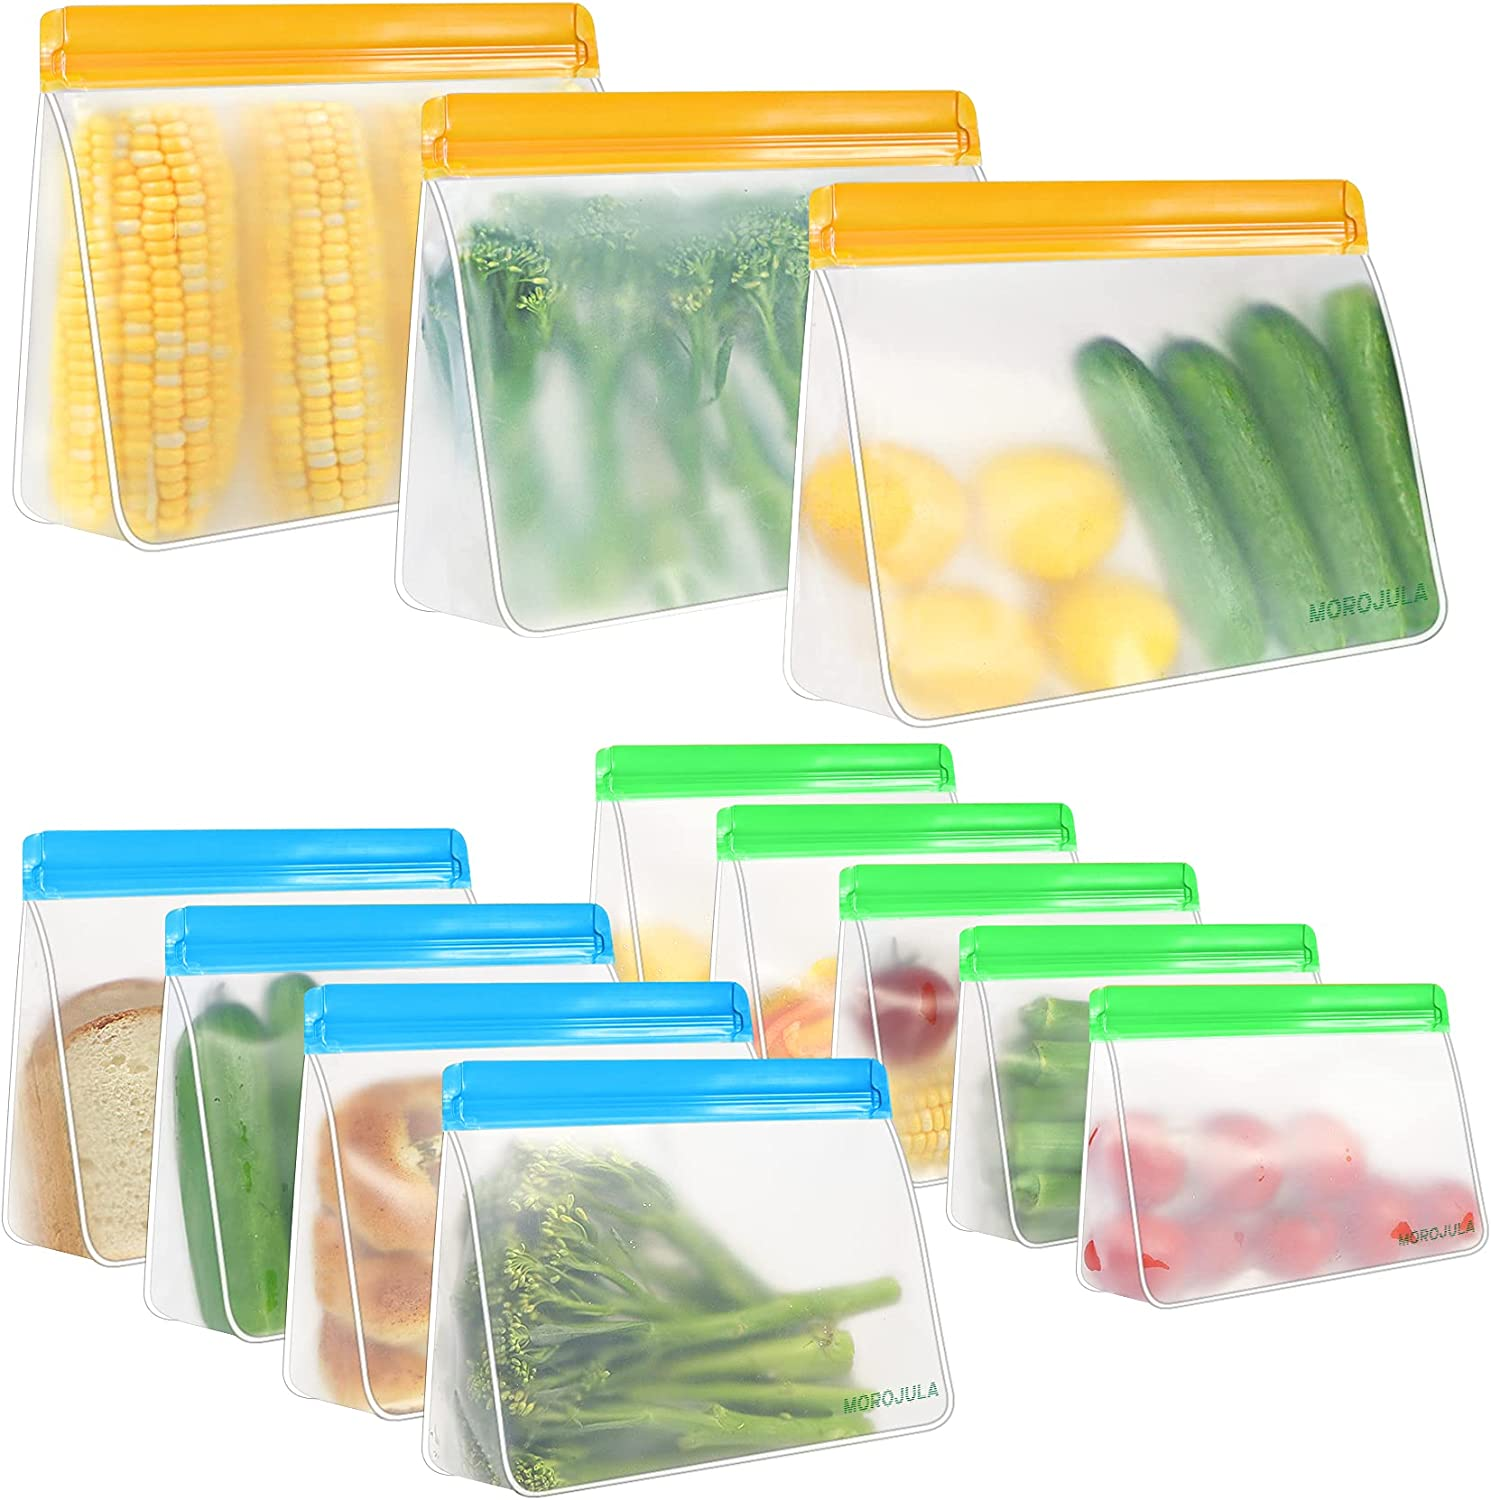 Reusable Storage Bags, 12 Pack Stand-Up Reusable Freezer Bags(3 Gallon Bags + 5 Sandwich Bags + 4 Snack Bags), Extra Large Space Food Storage Bags for Sandwich, Fruits, Snack, and Make-up